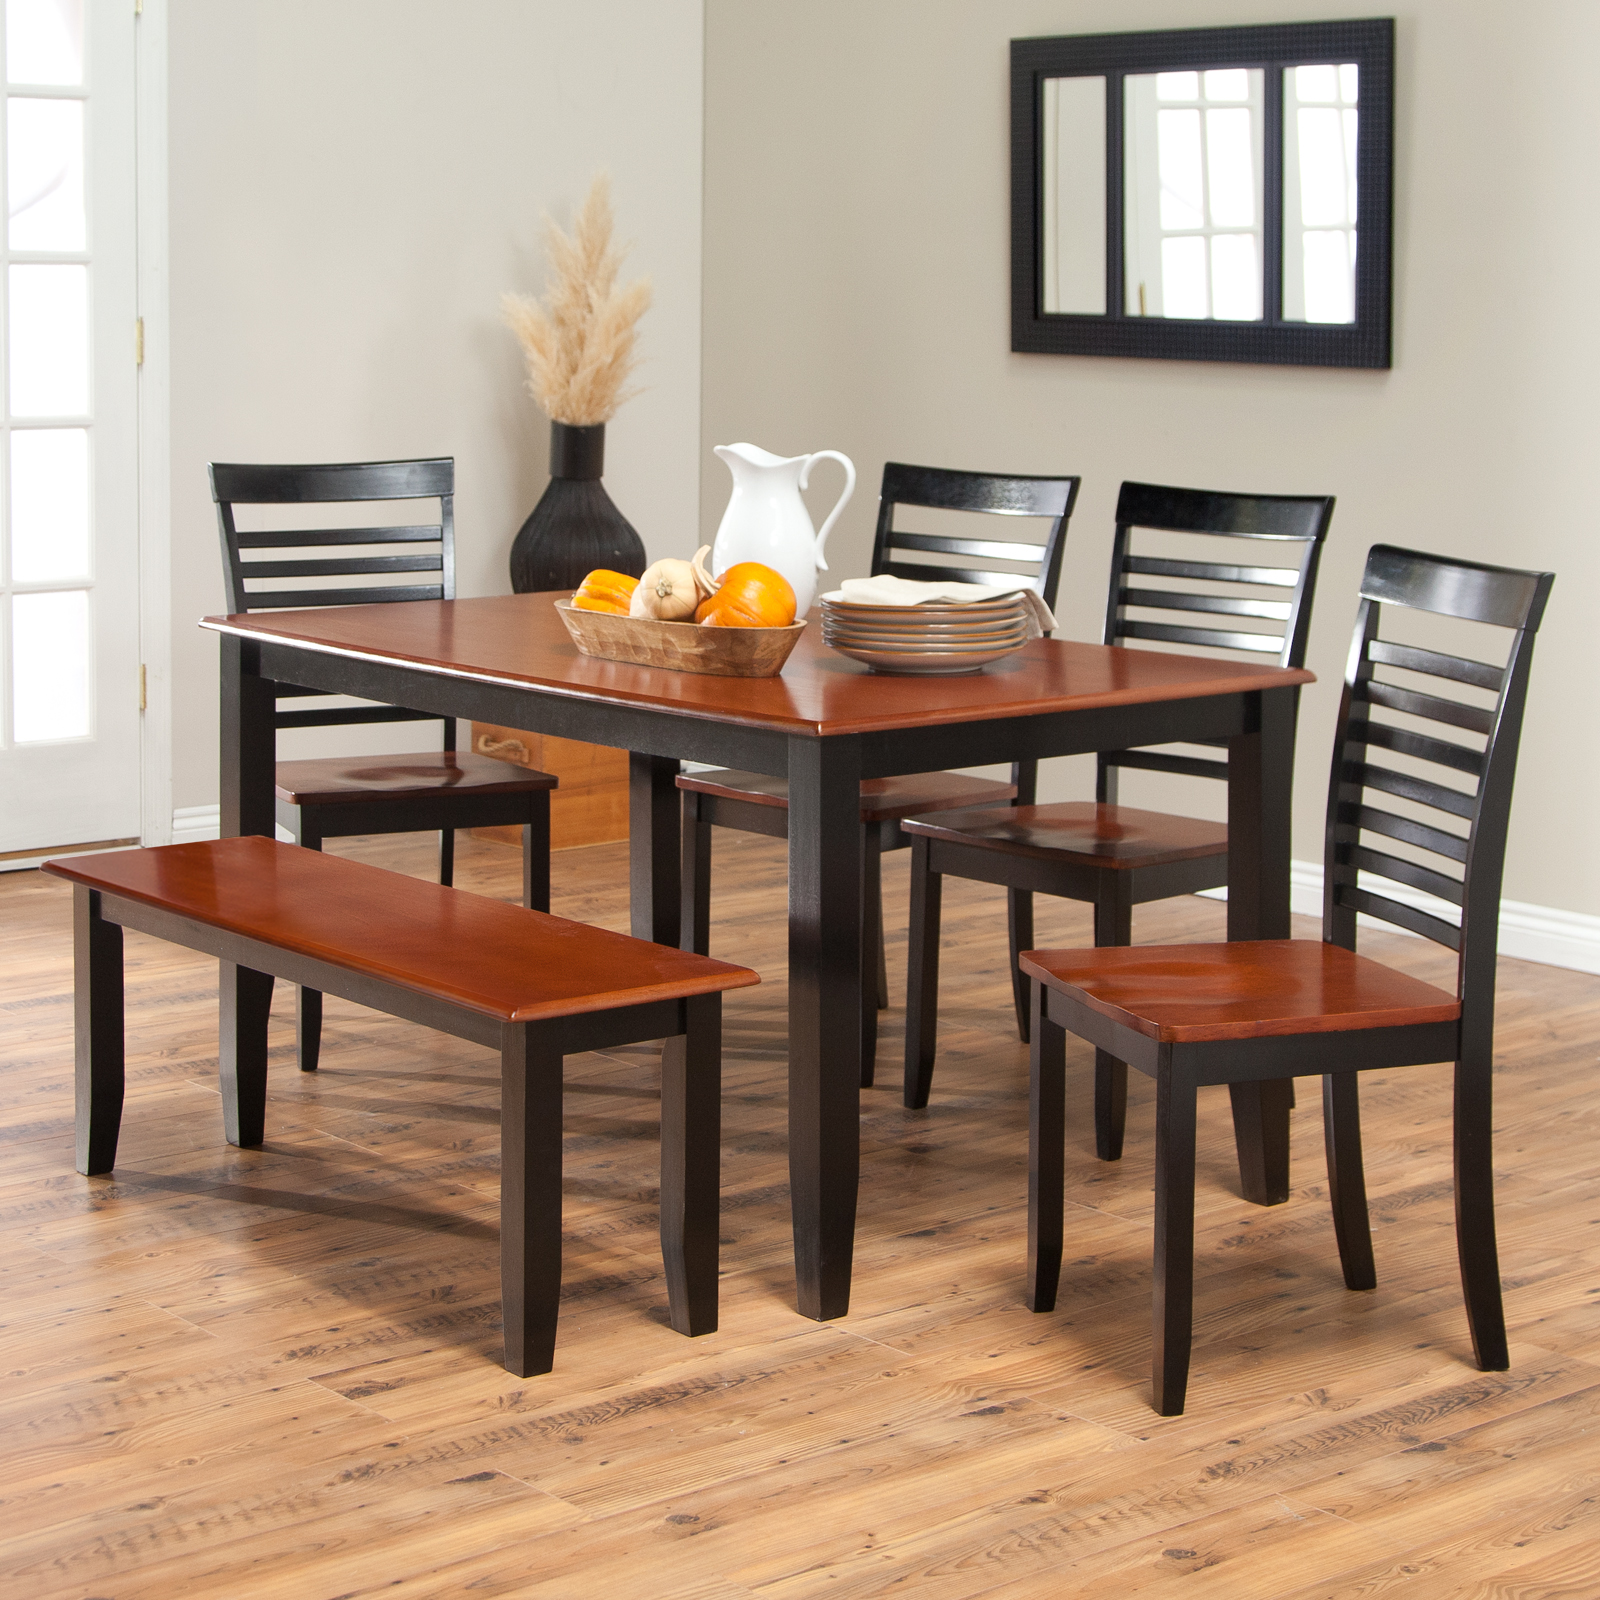 bloomington6piecetablechairsandbenchsetblackcherry kitchen table chairs Boraam Bloomington Dining Table Set Black Cherry Dining Table Sets at Hayneedle